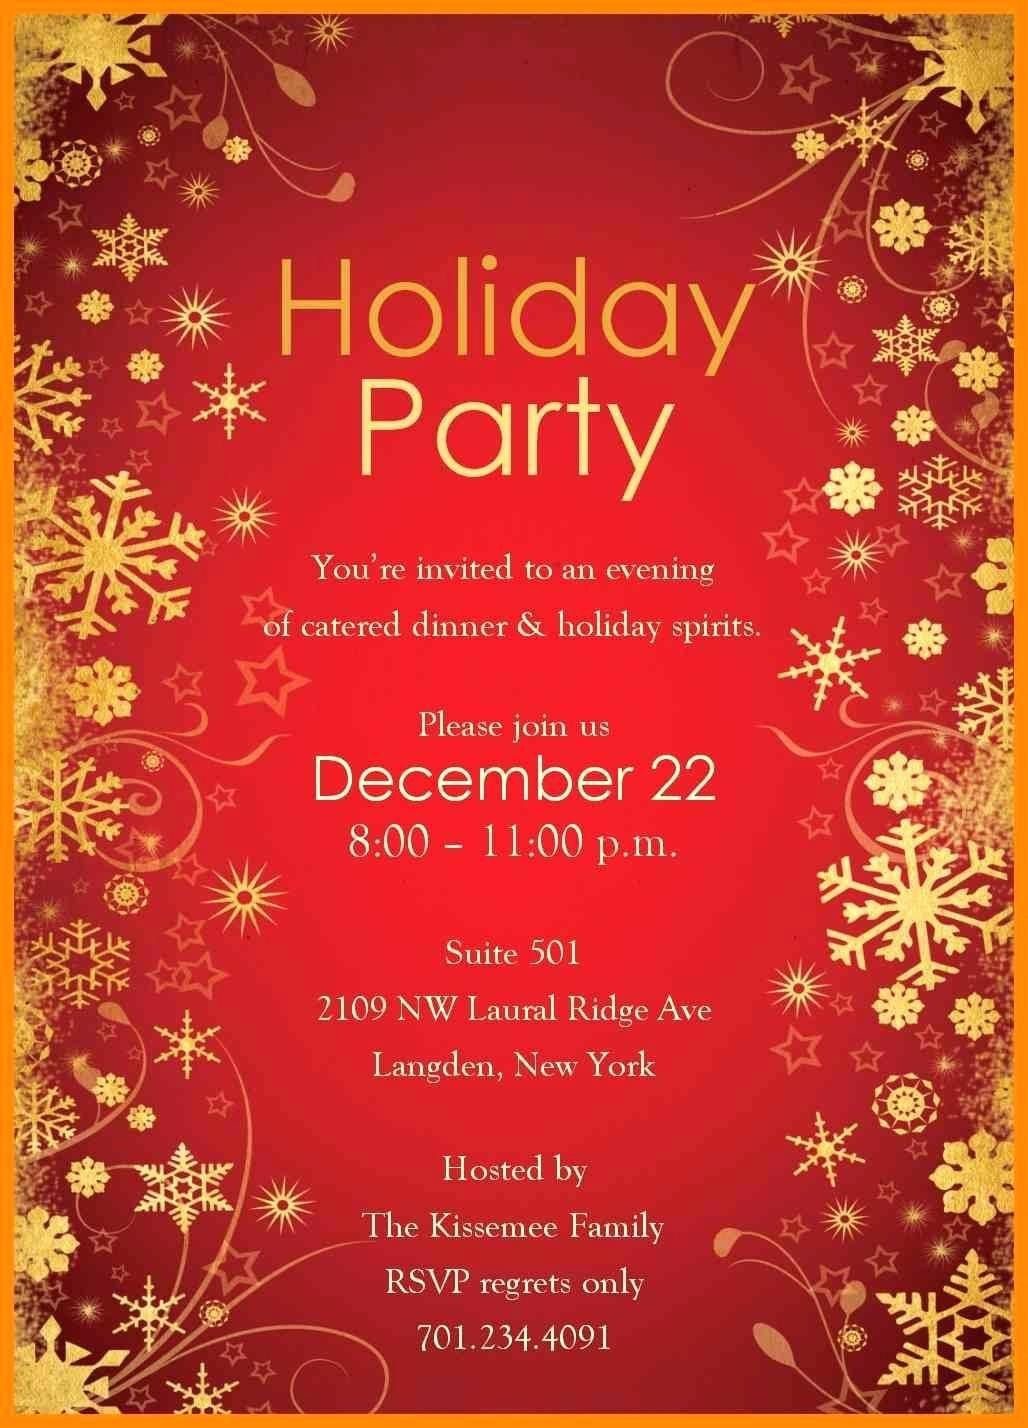 001 Top Free Holiday Party Flyer Template Word High Resolution Full